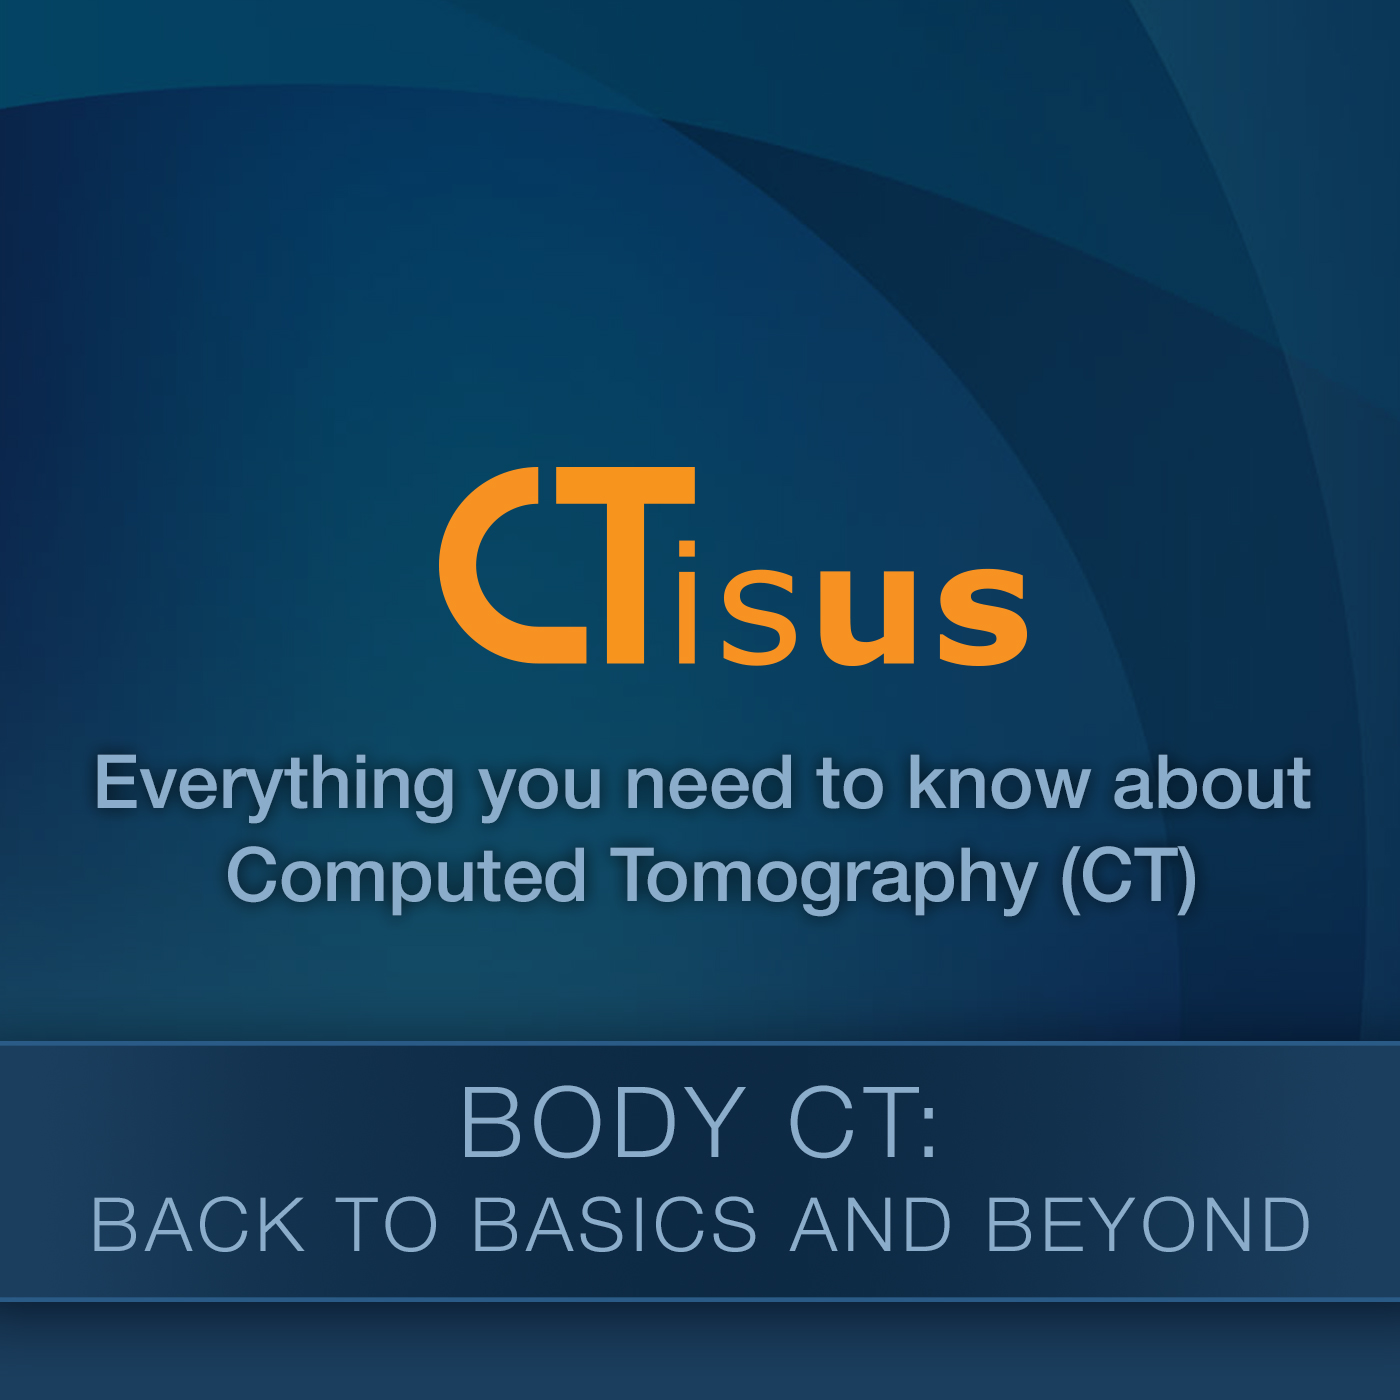 Body CT: Back to Basics and Beyond - CTisus.com